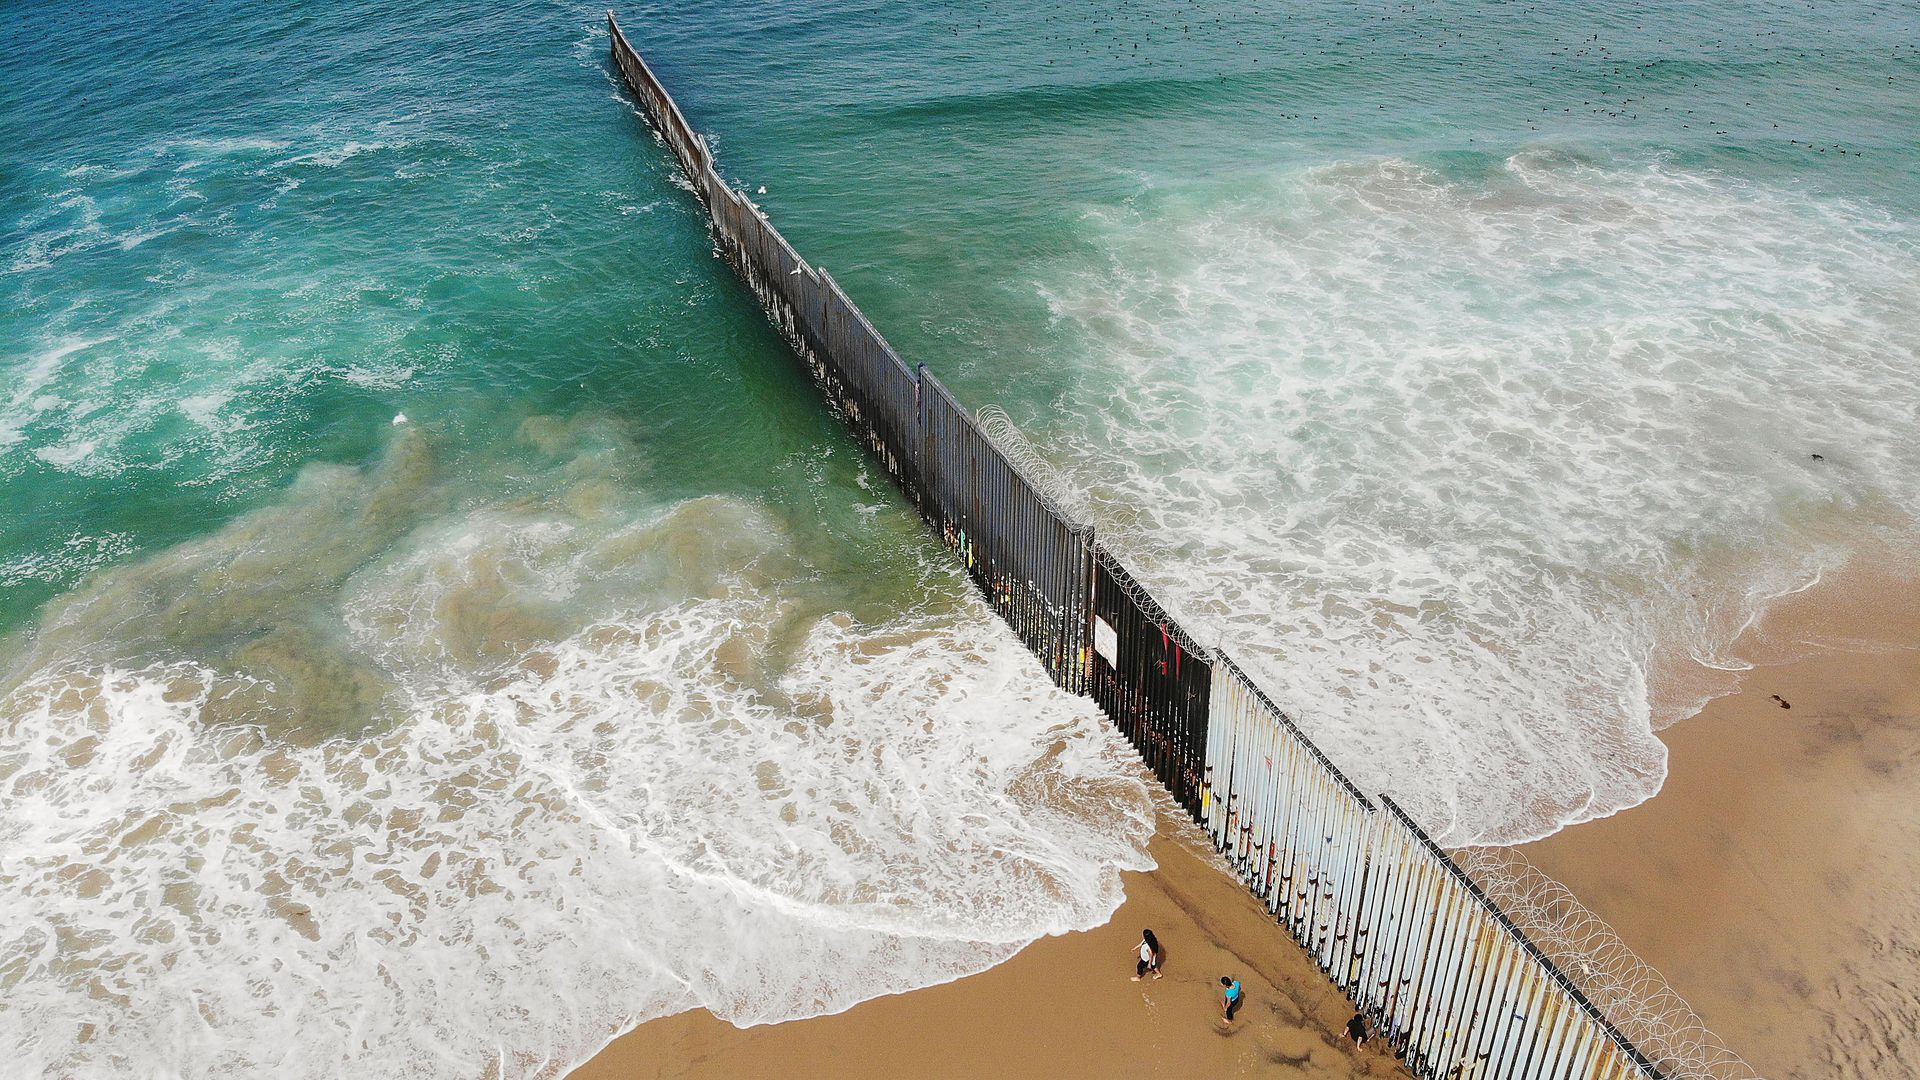 In this image, three people from Mexico walk along a tall fence the southern border that leads down the beach and into the ocean.